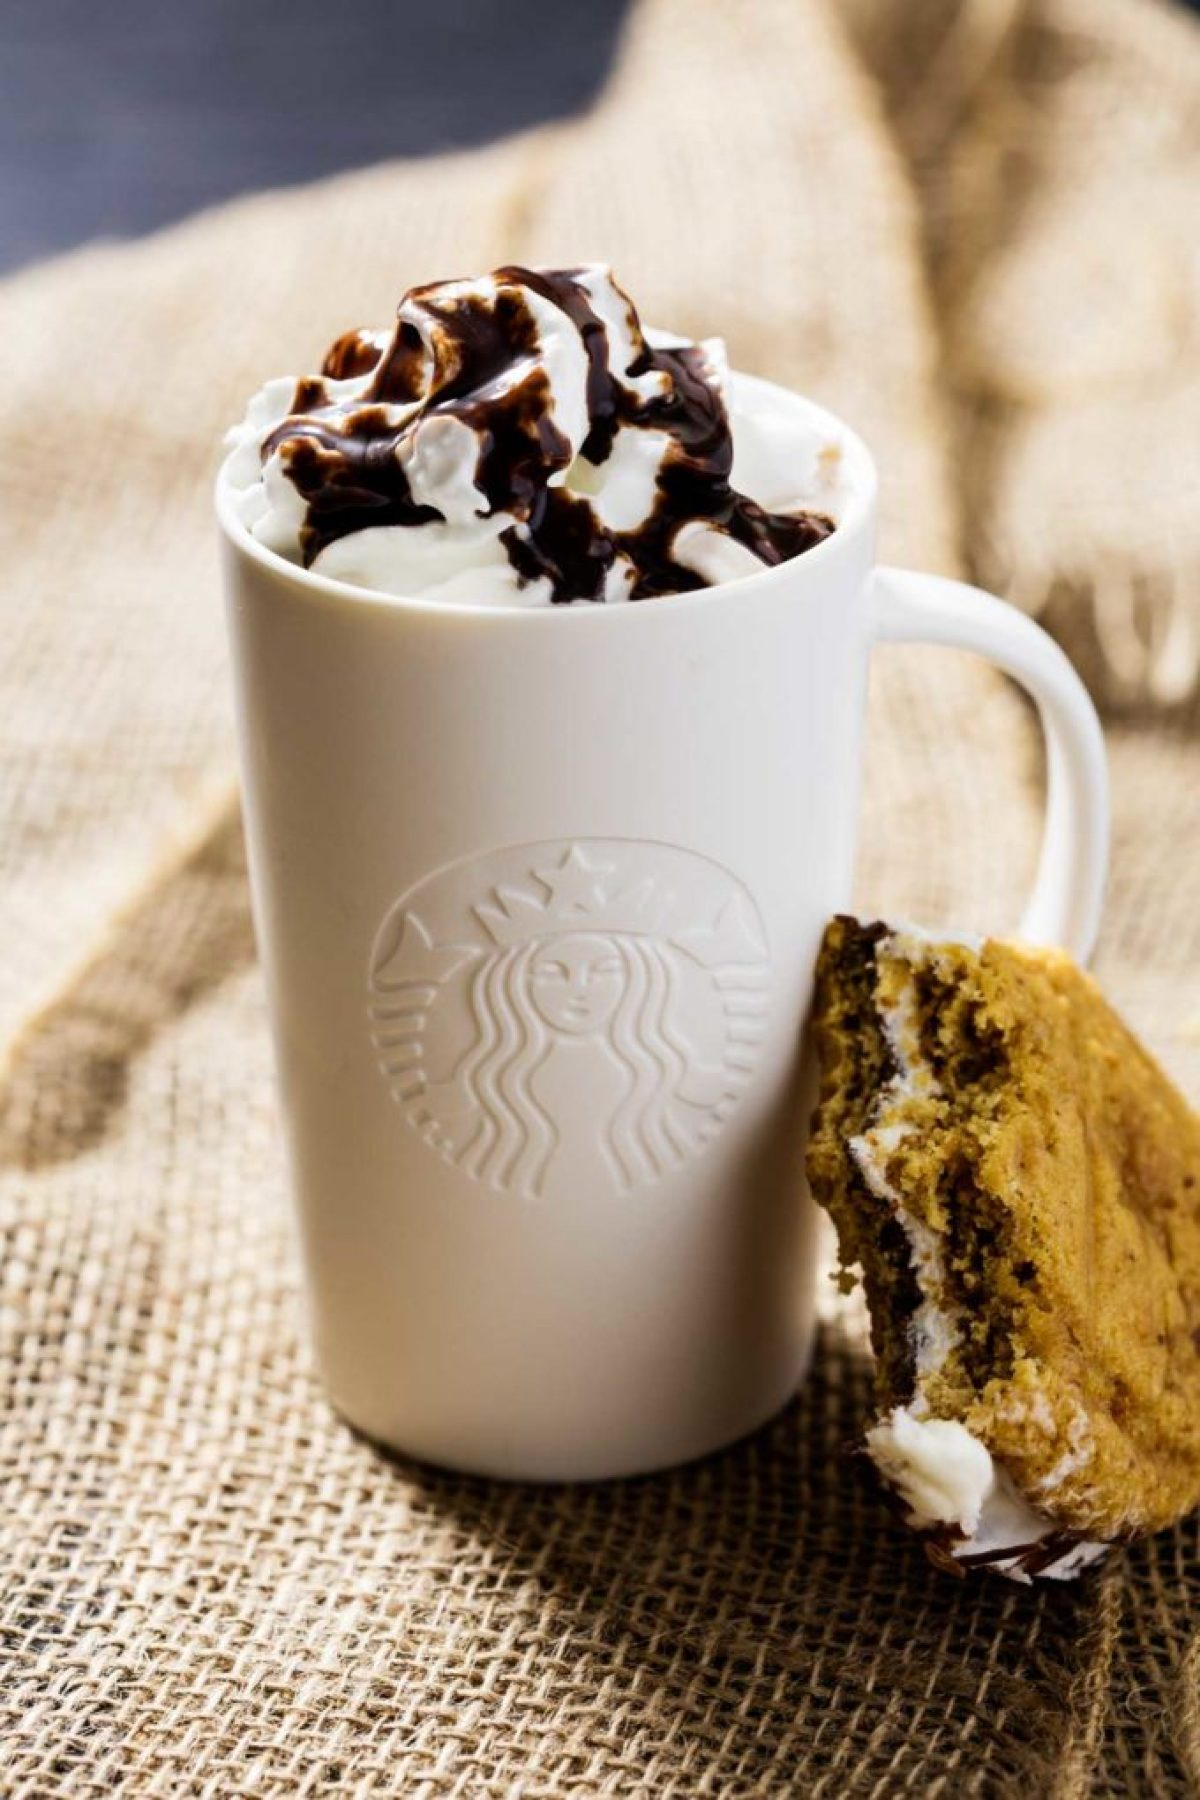 S'mores Whoopie Pies and Cocoa: Cocao with a graham cracker cake cookie with chocolate ganache and a tasty marshmallow buttercream, that perfectly complimentsthe newStarbucks® Hot Cocoa K-Cup® pods.